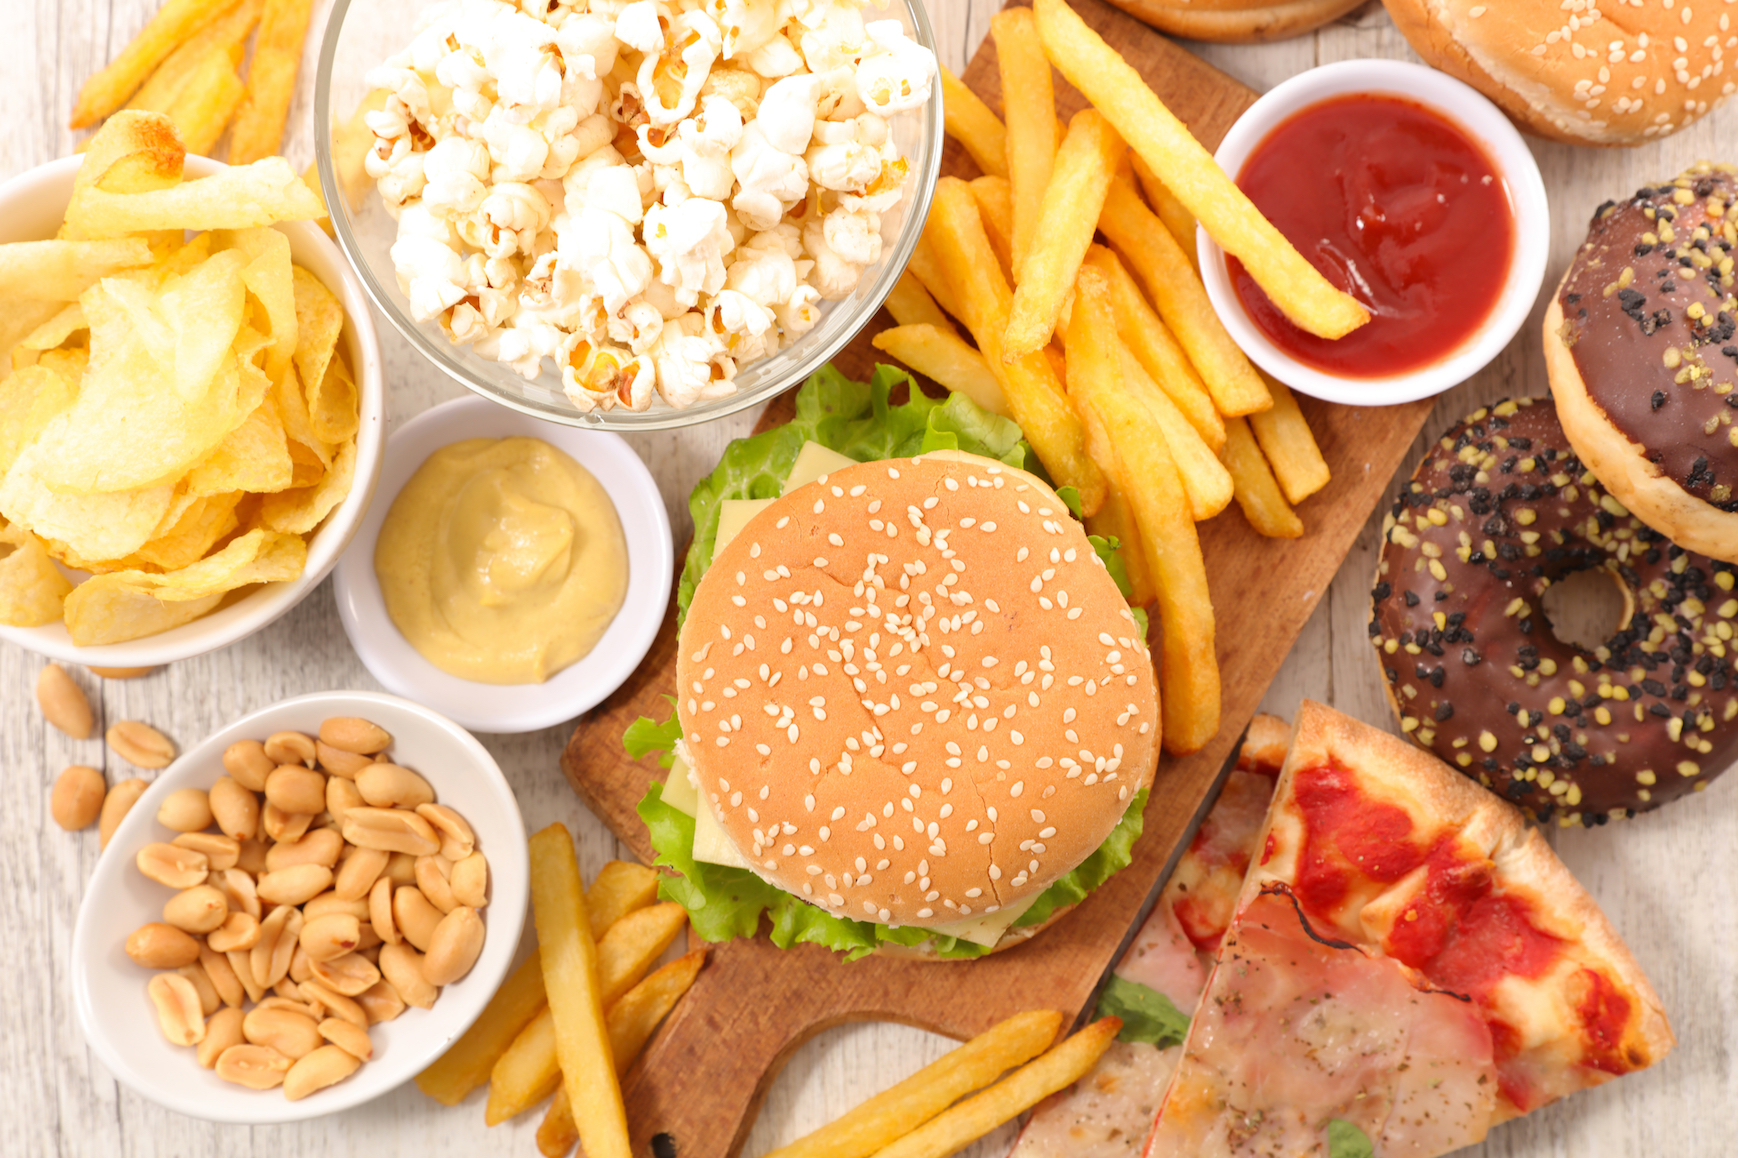 Well this explains a lot. A new study has found that junk food is actually twice as distracting as healthy food.